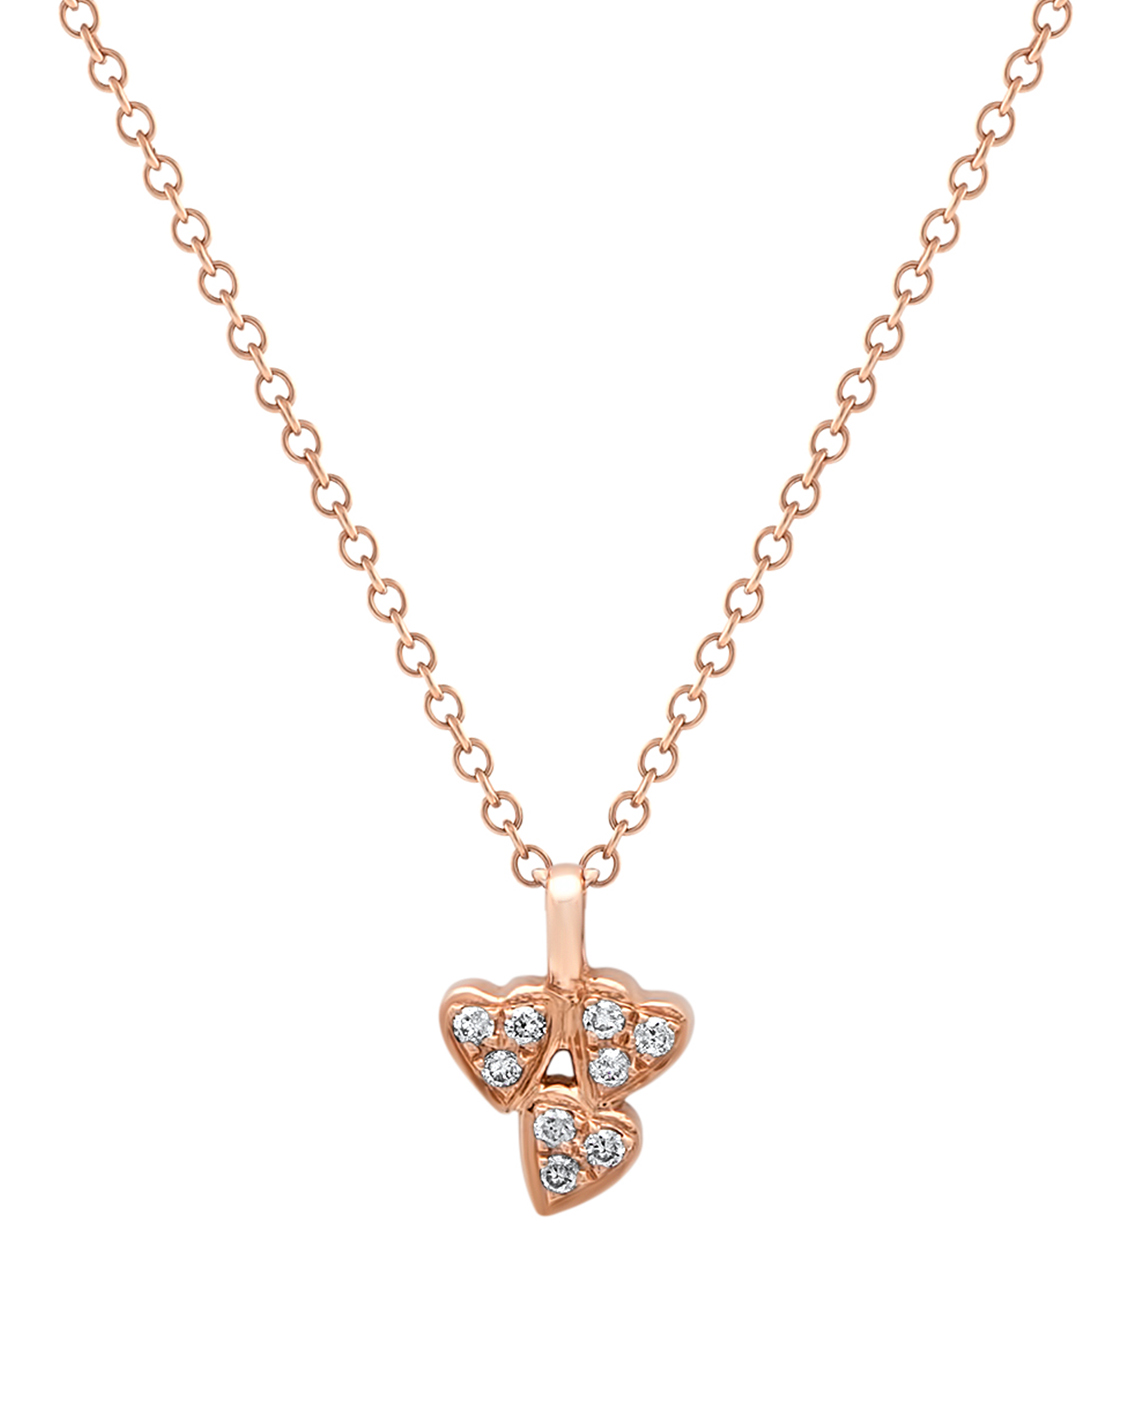 Queen of Hearts Diamond Cluster Necklace by Marmari on curated-crowd.com